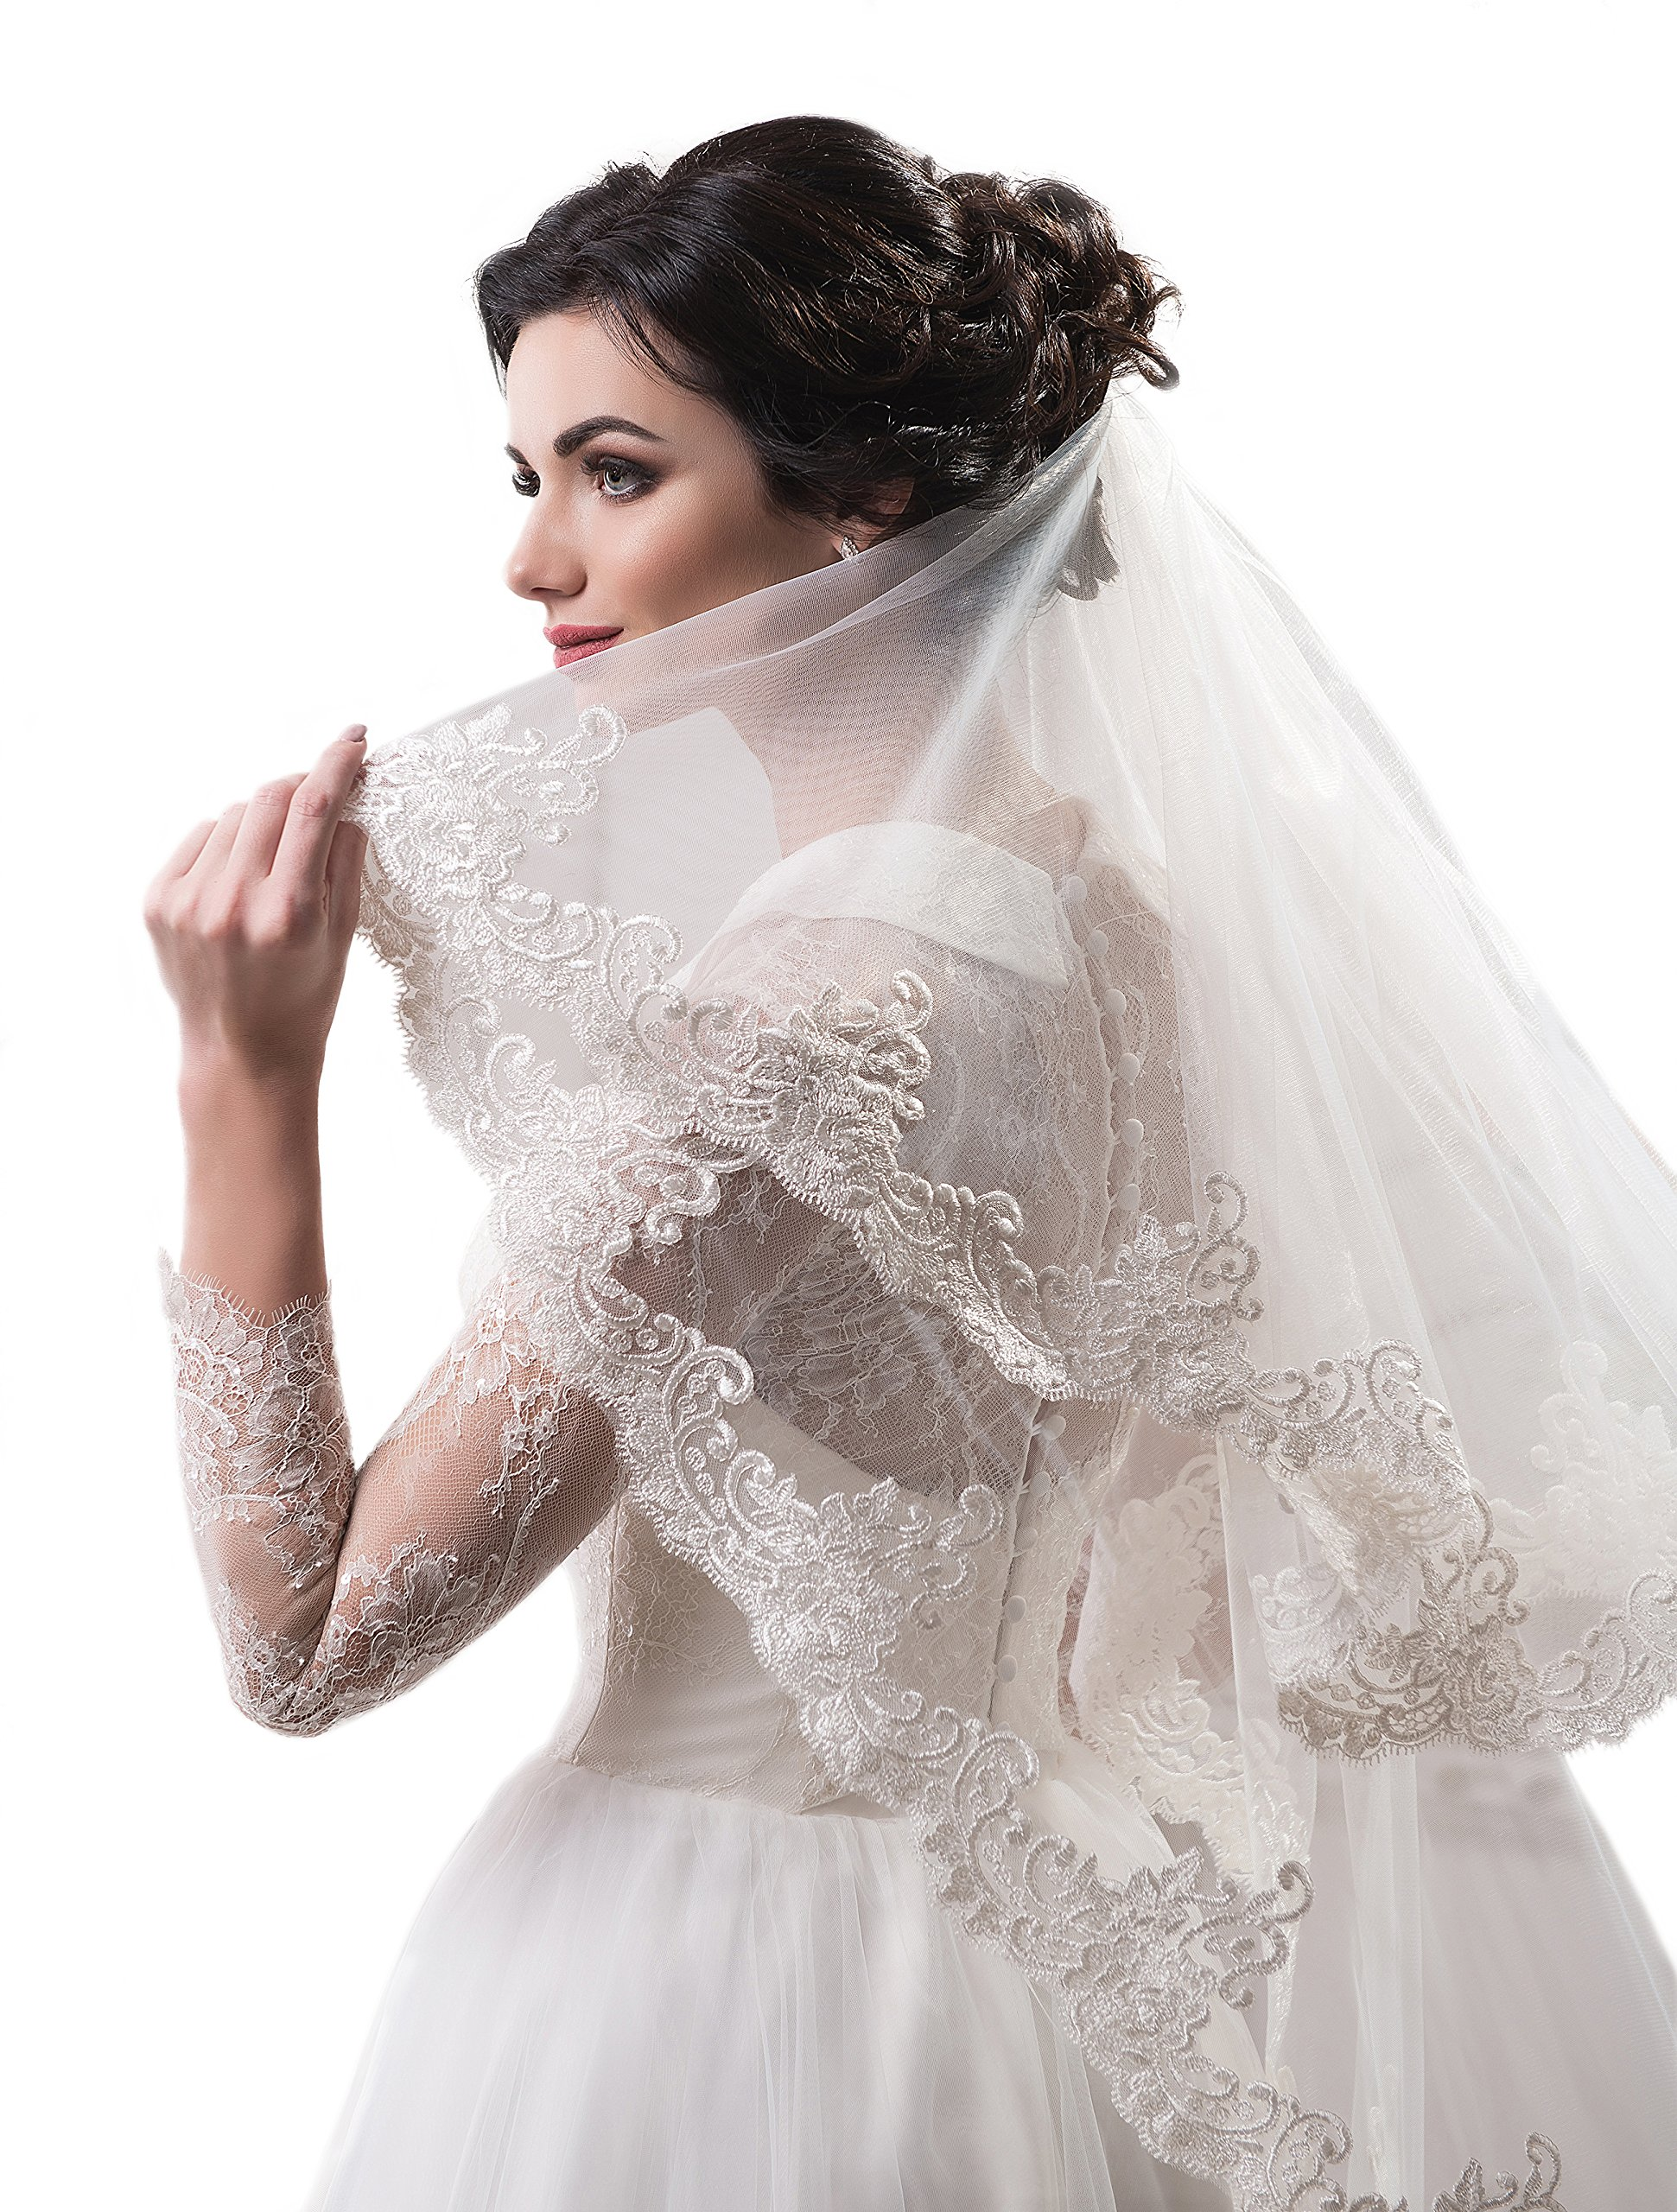 Bridal Veil Abby from NYC Bride collection (short 30'', white)